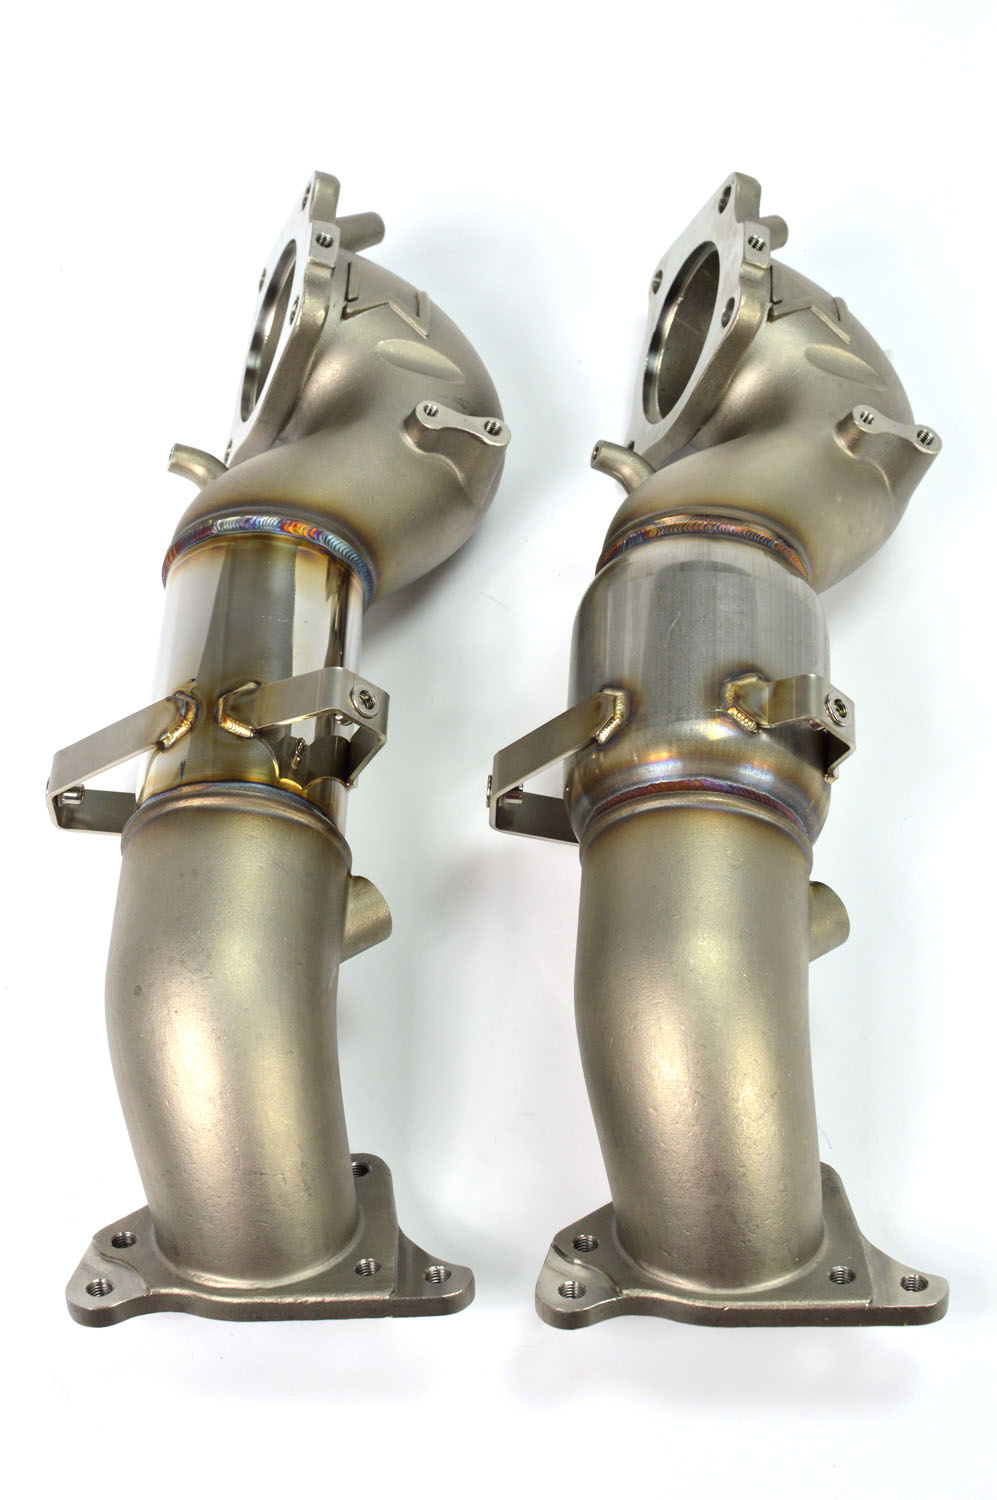 civicx-downpipe-for-ext-and-sport-model